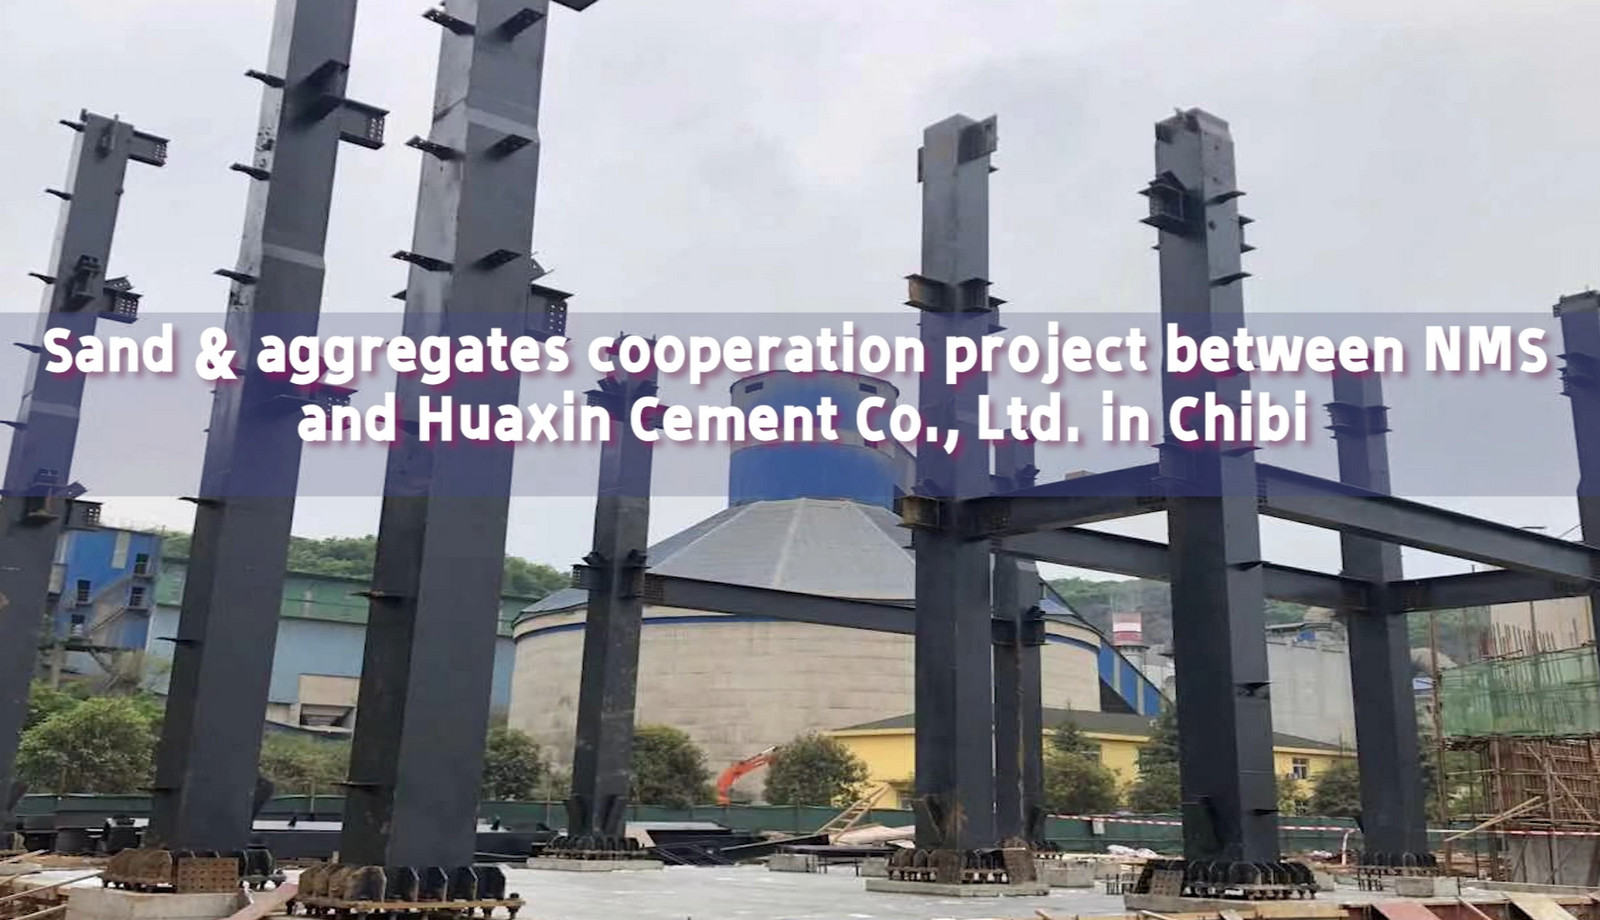 Sand and Aggregates Cooperation Project in Chibi, Hubei, China